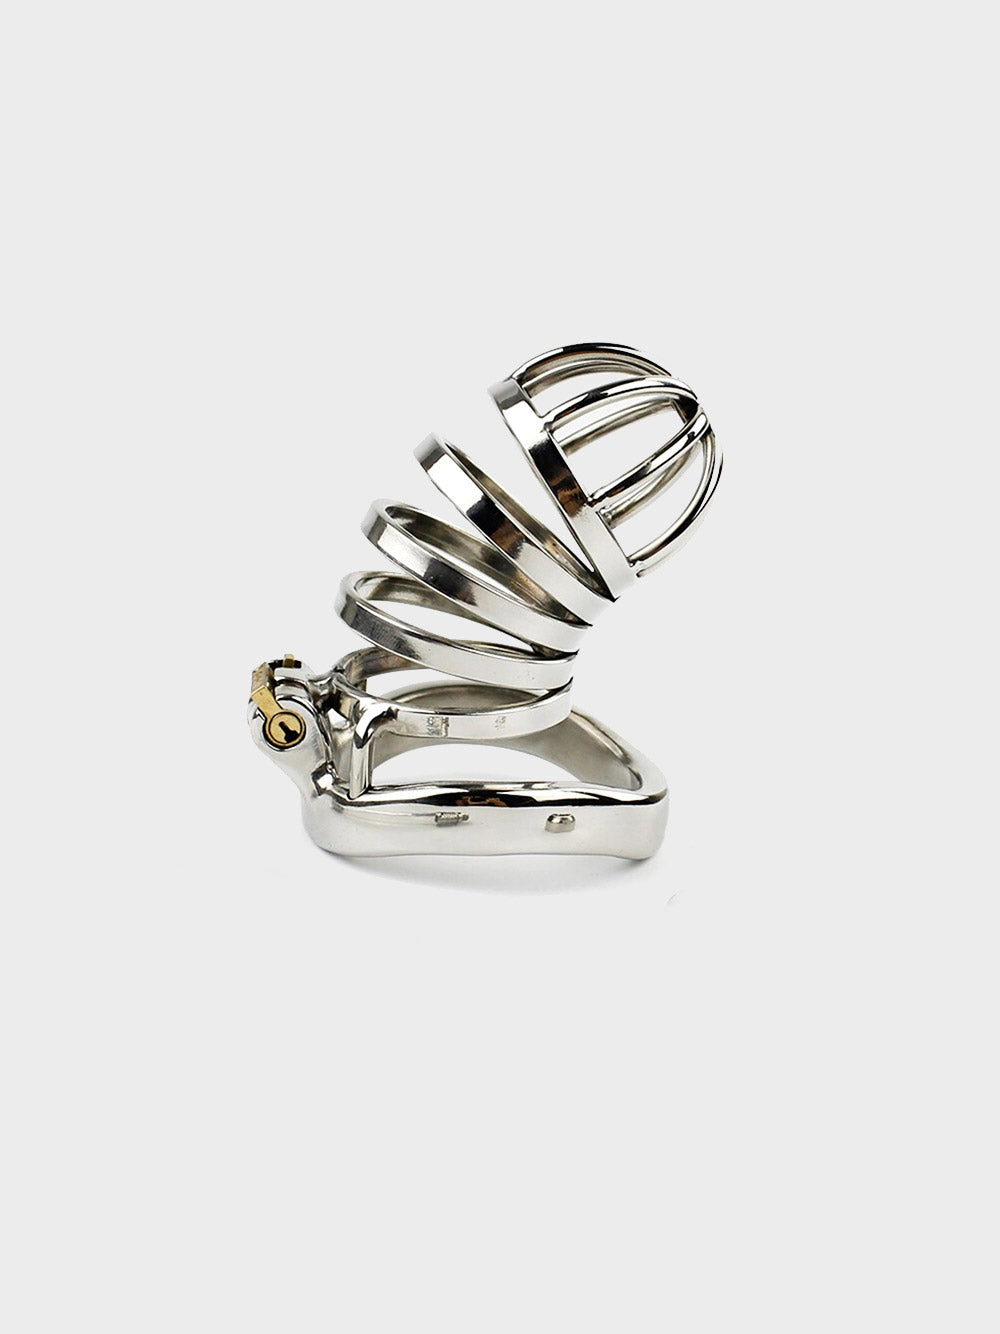 Our popular medium sized chastity cage